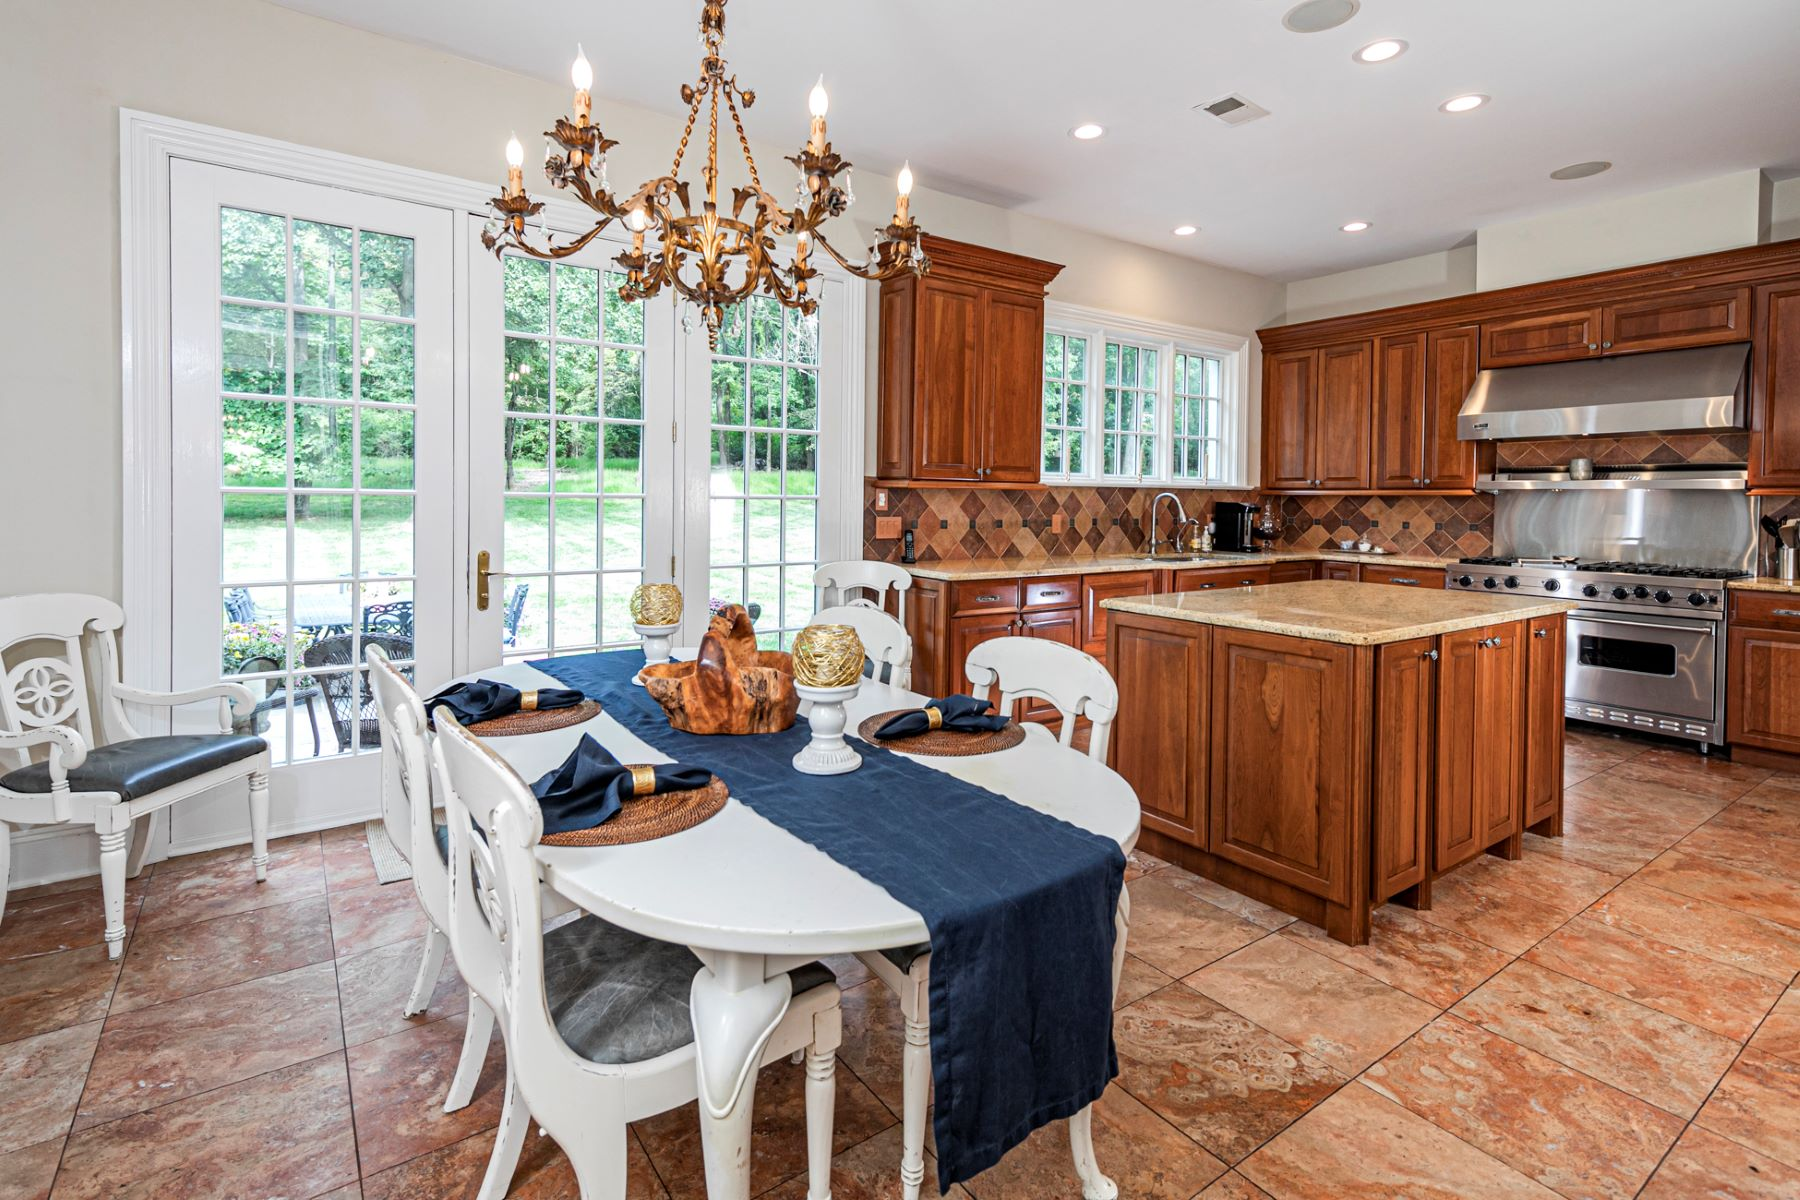 Additional photo for property listing at Beautifully Constructed Inside and Out 16 Fredrick Court, Princeton, New Jersey 08540 United States